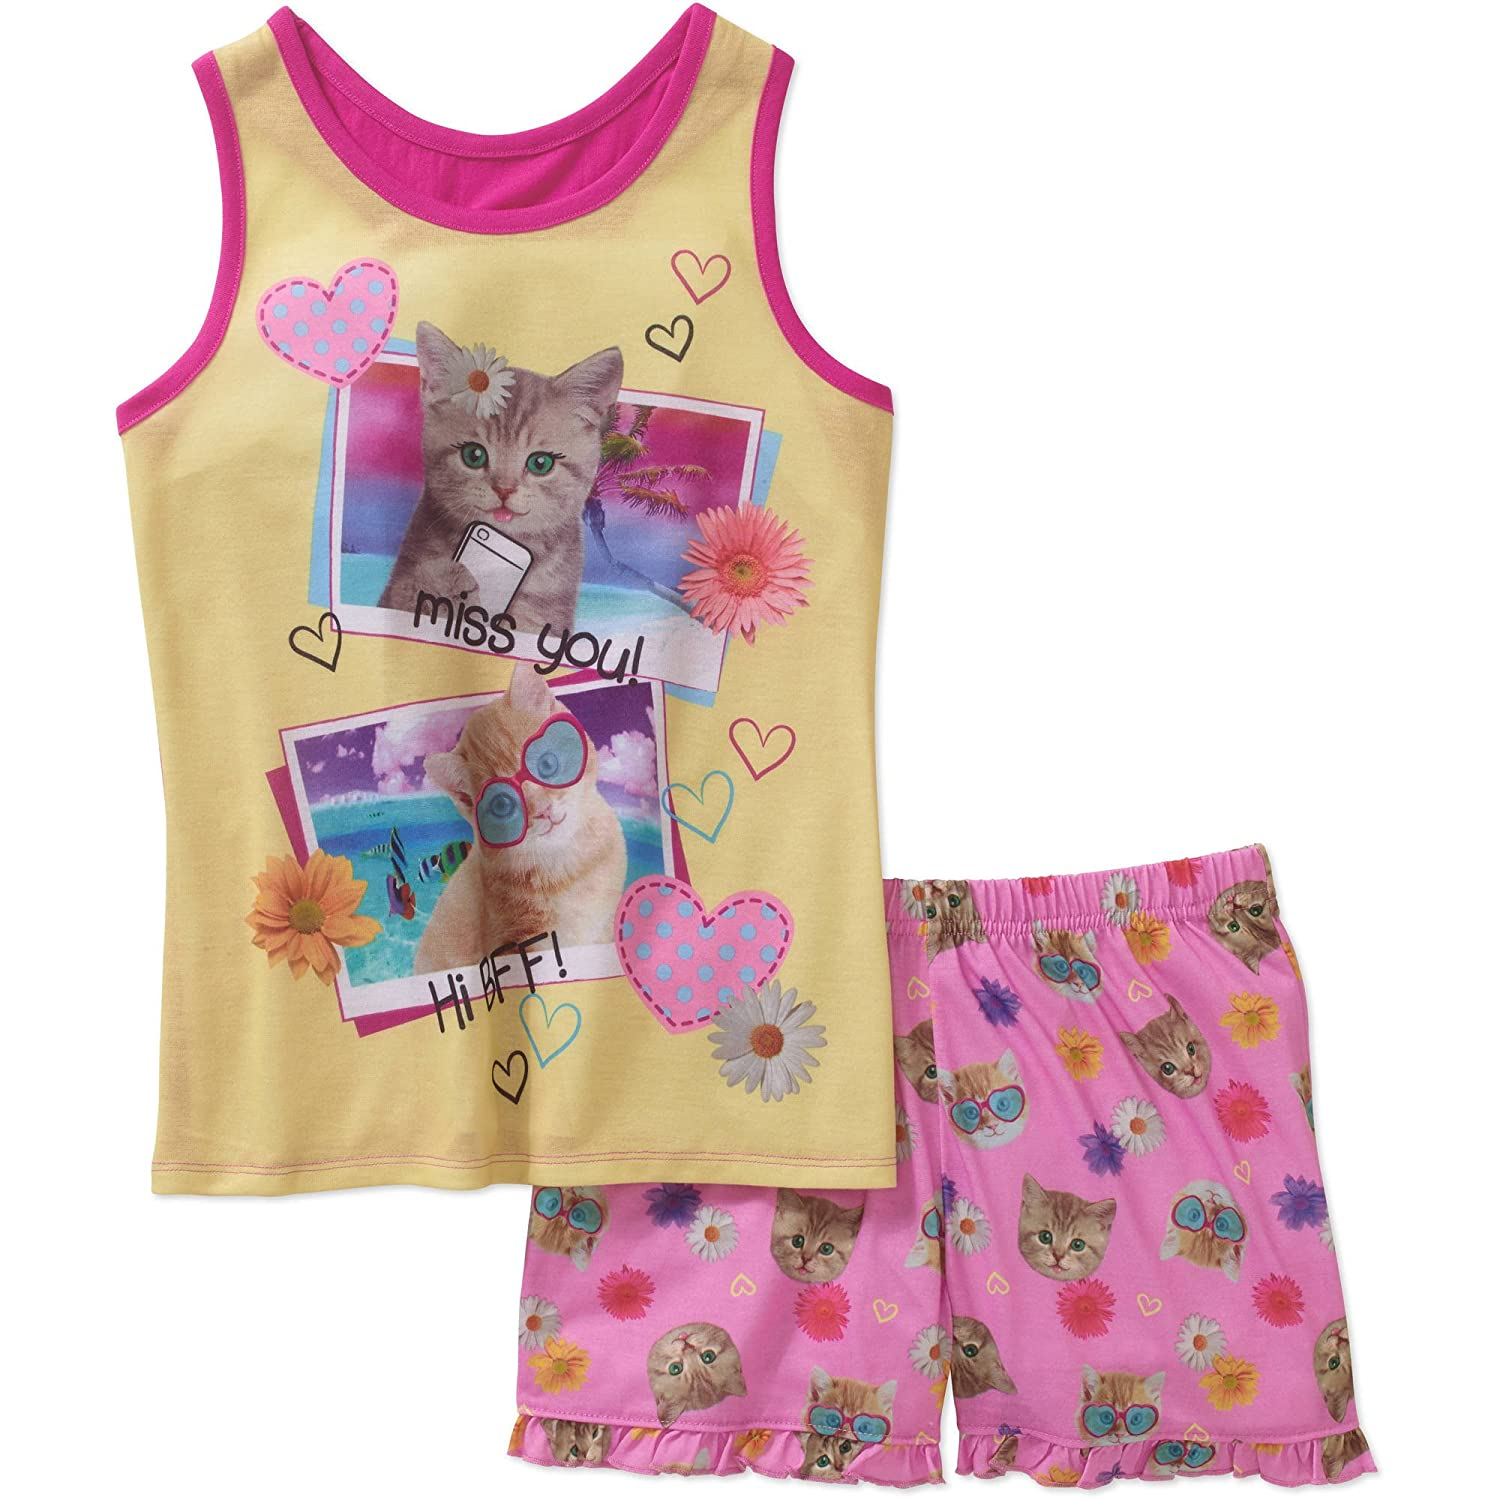 Girls Sizes 4-16 Girls Graphic Pajama Sleep Tank and Shorts Two-Piece Set Featuring Animals Fun Characters